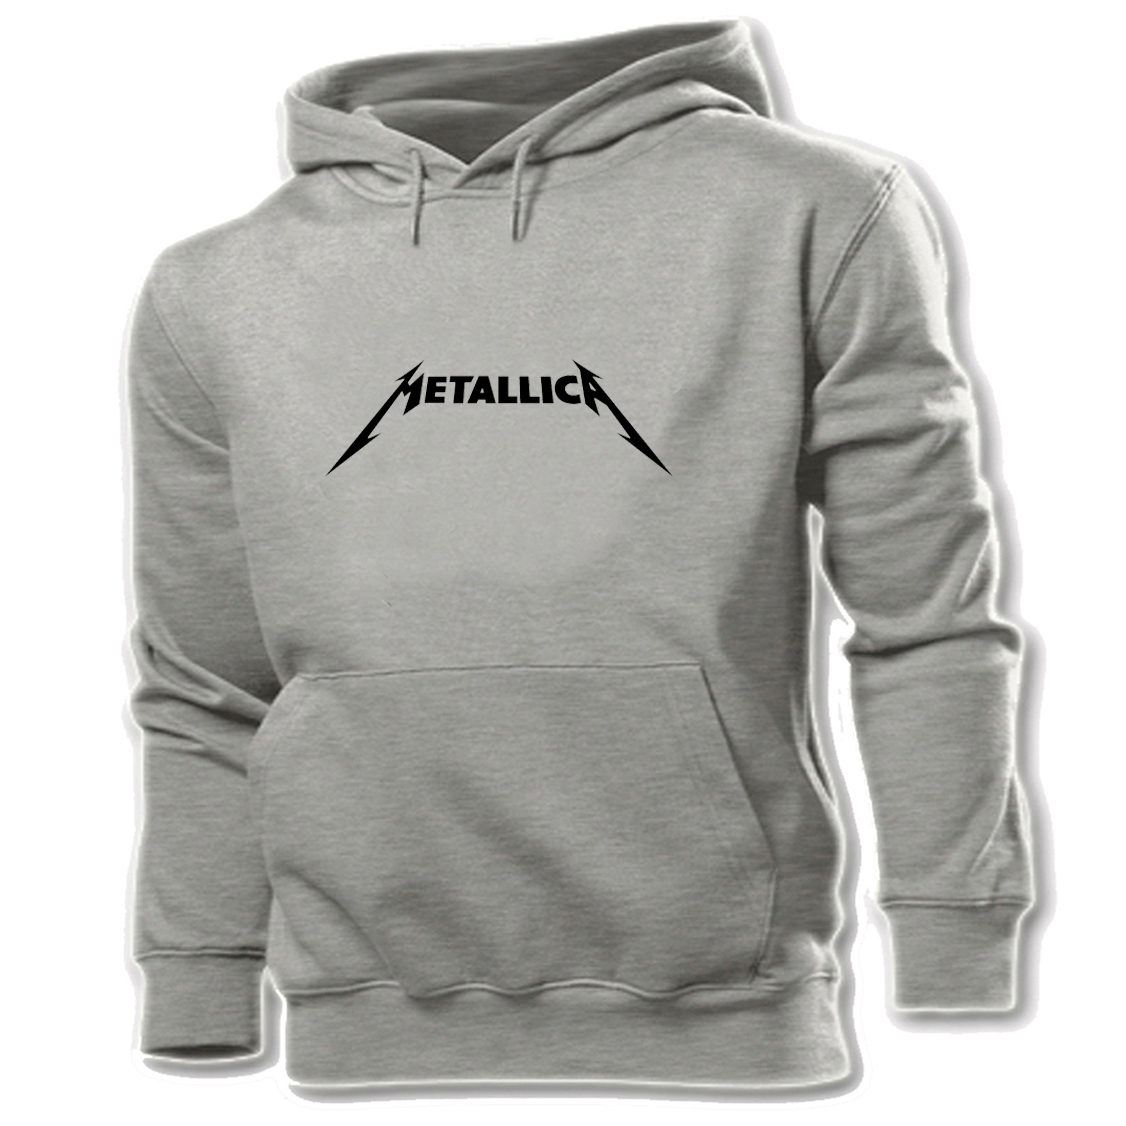 Metal band hoodies